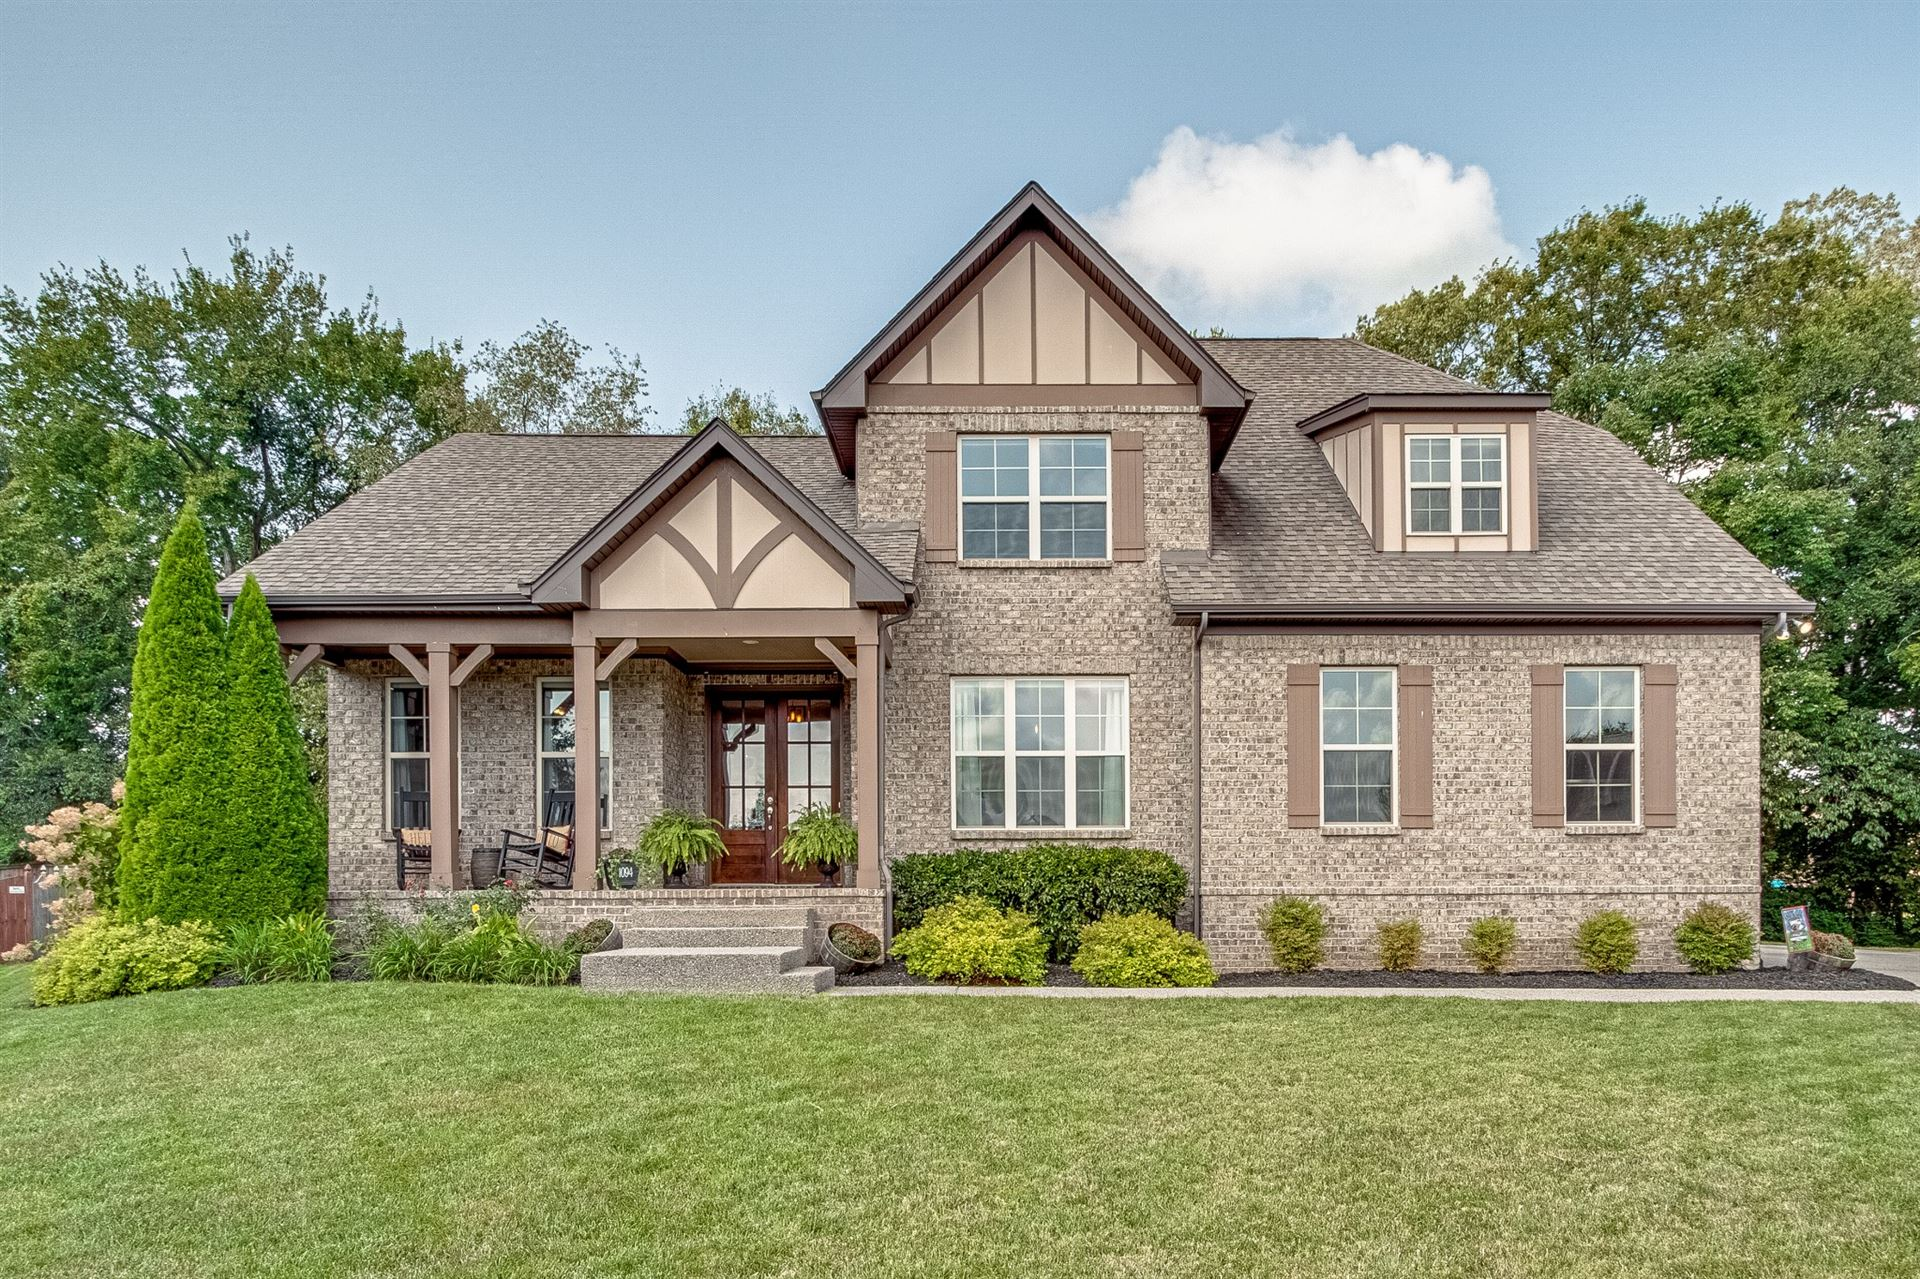 1094 Cantwell Pl, Spring Hill, TN 37174 - MLS#: 2290260